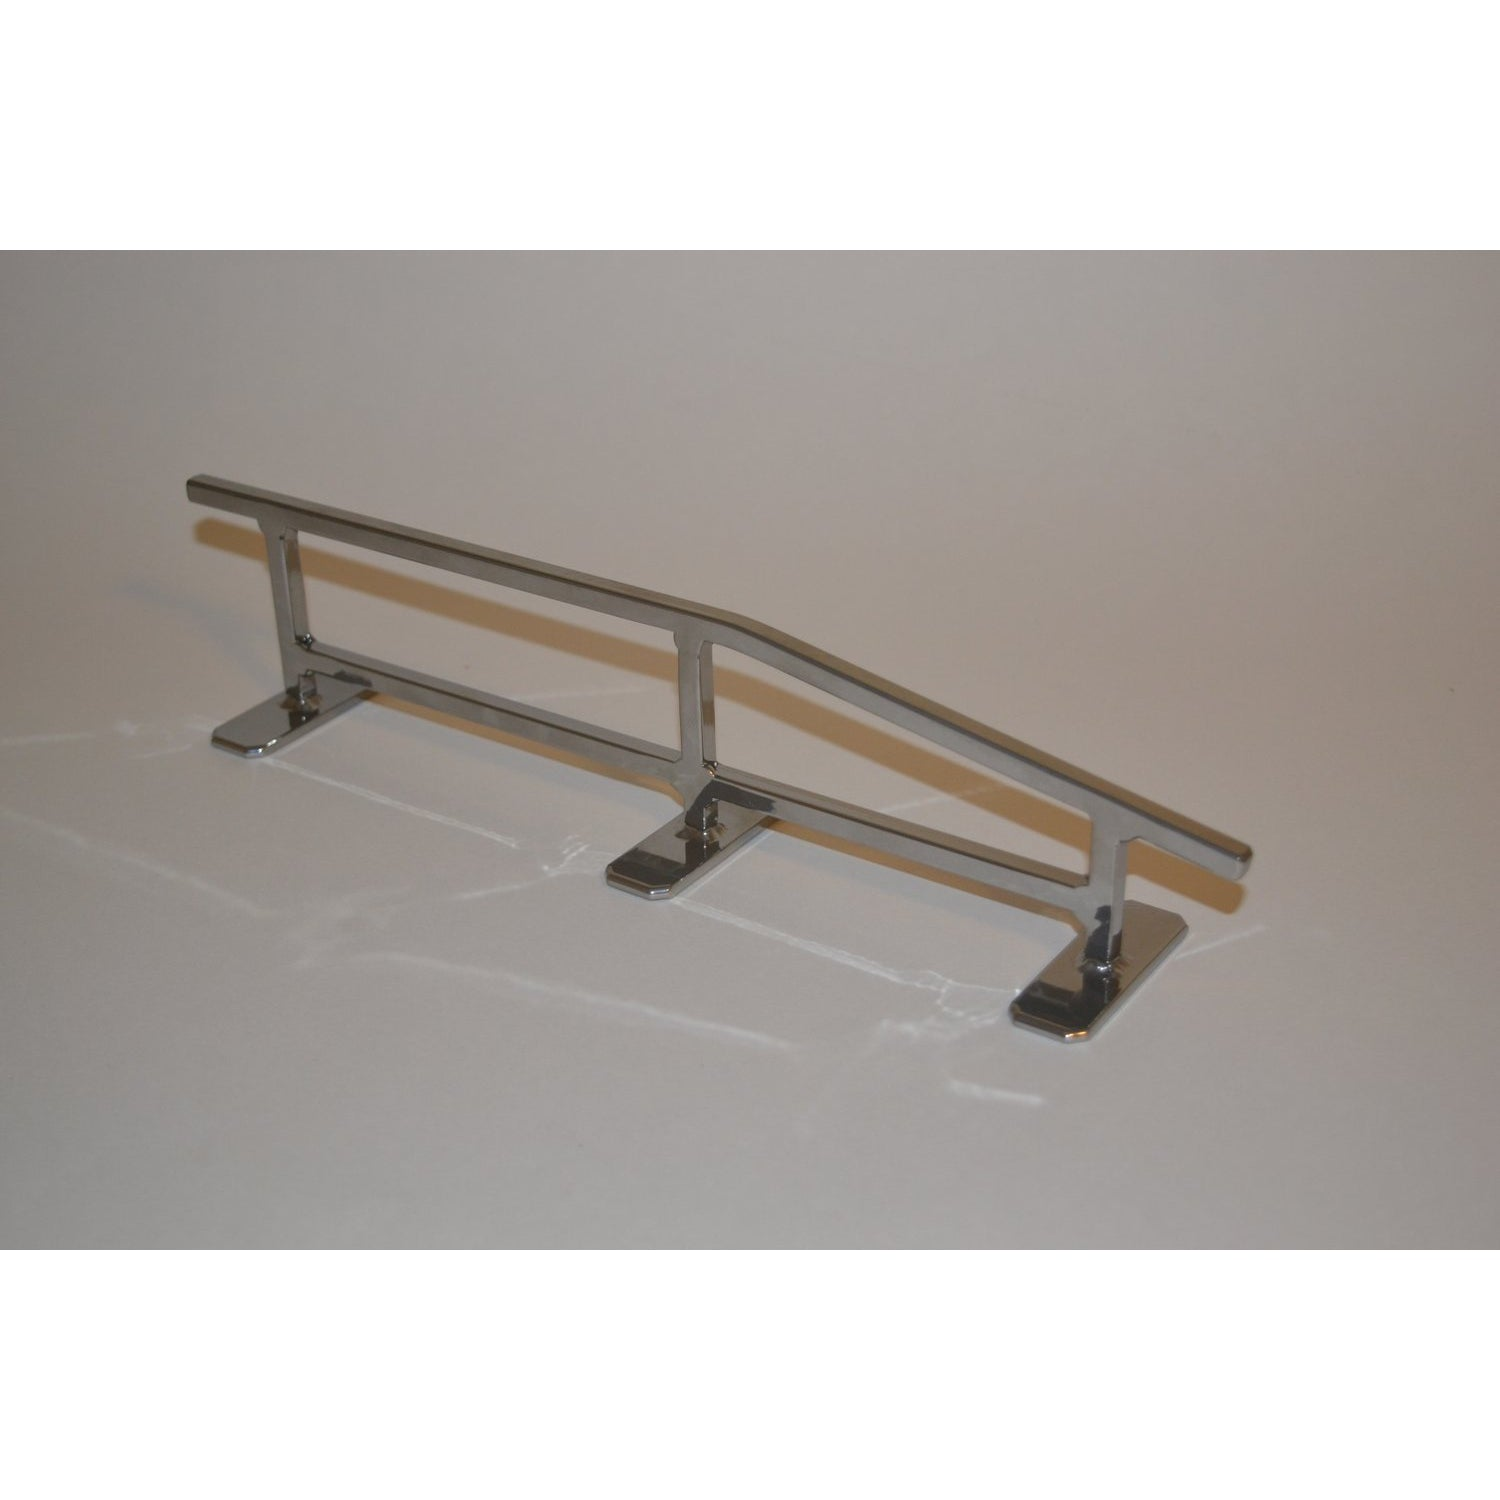 Airflo - Up-Flat Square Wrestling Rail